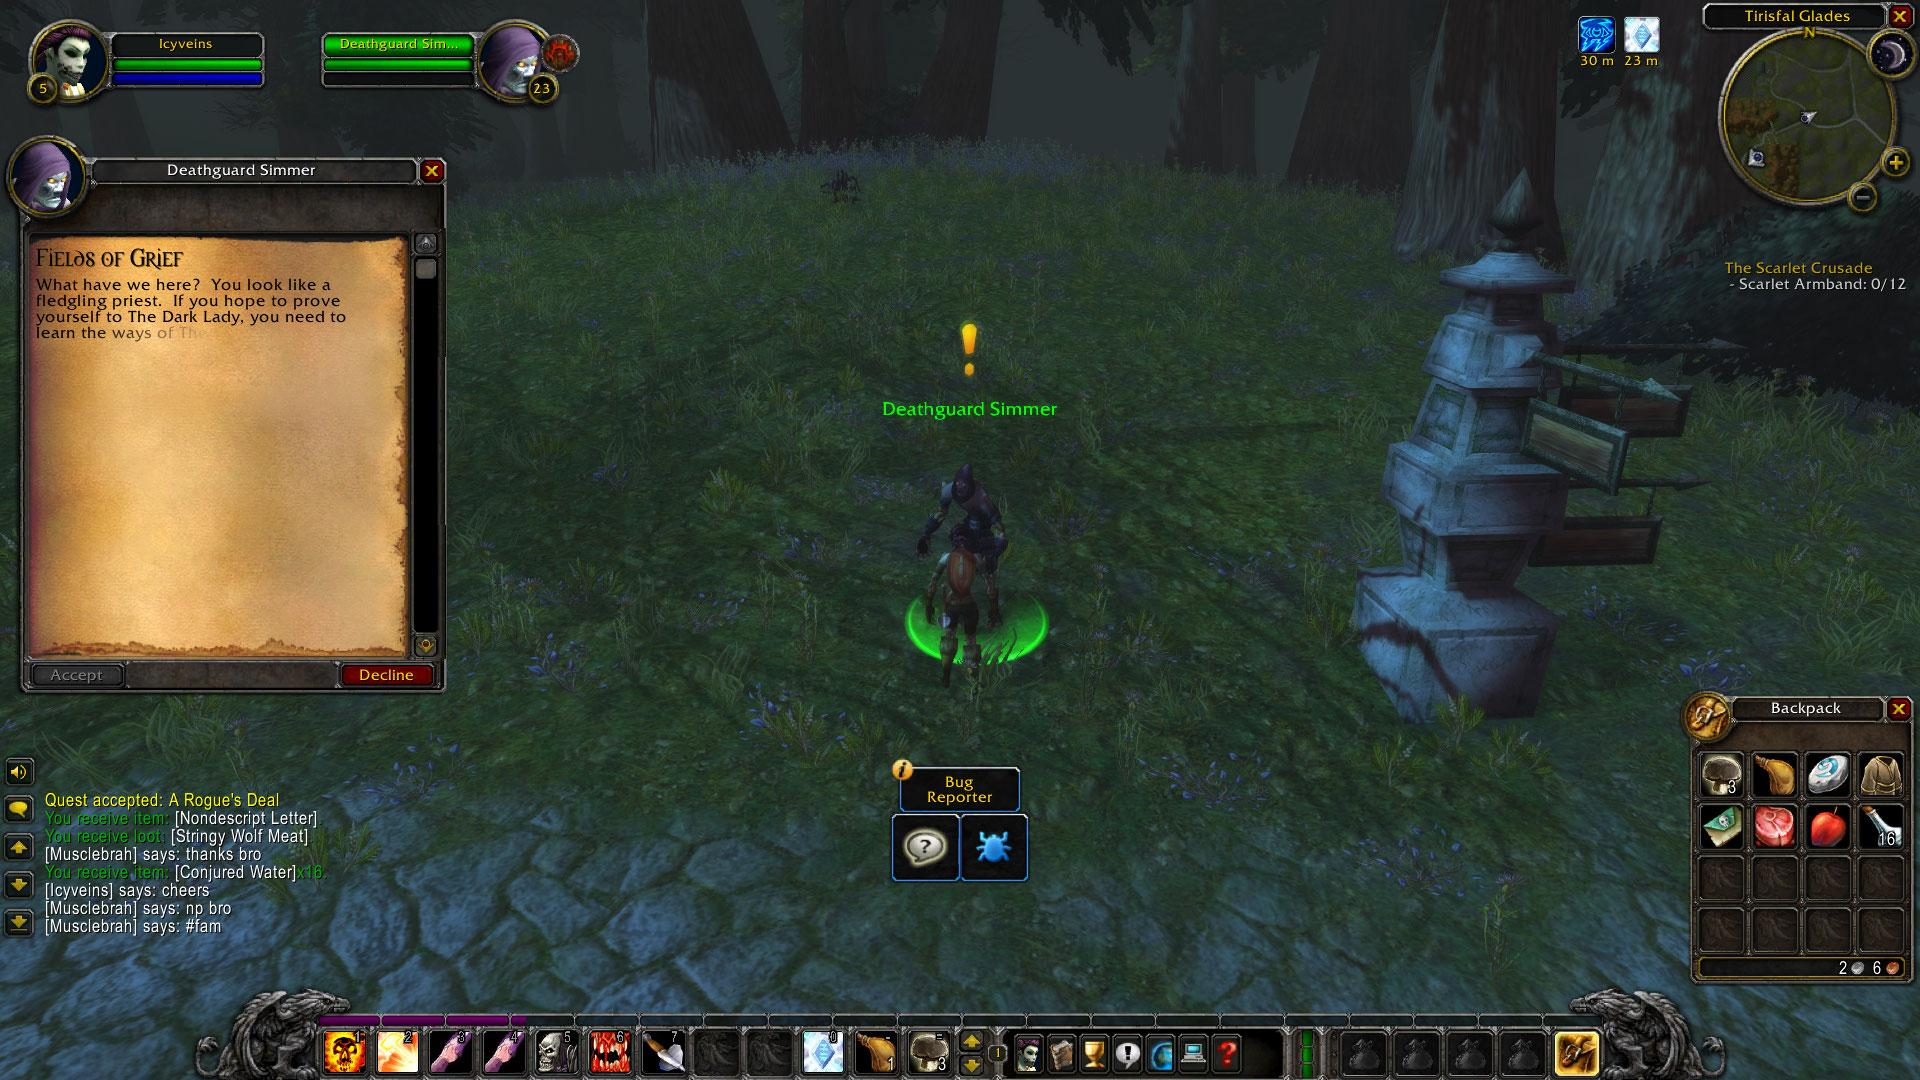 WoW Classic: First Impressions - News - Icy Veins Forums